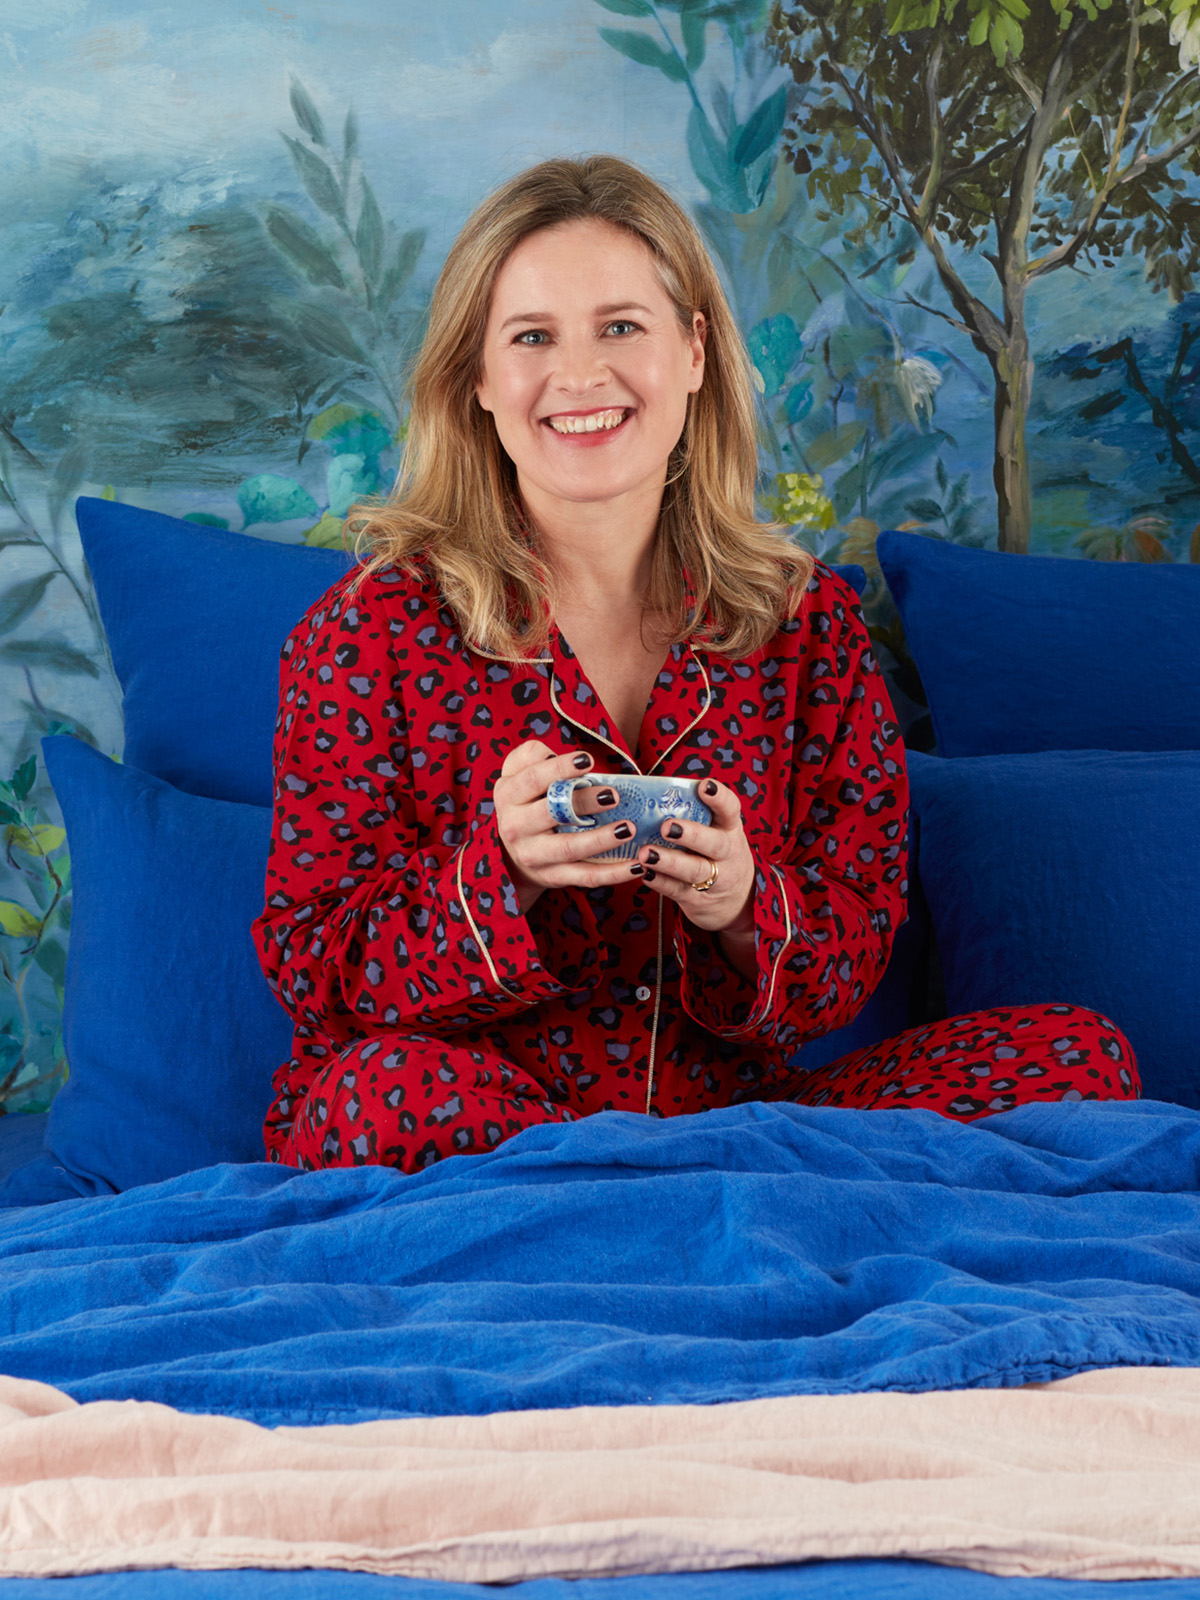 Interior designer and colour scheme expert shares her Christmas gift ideas which include these leopard print pyjamas by Universe of us